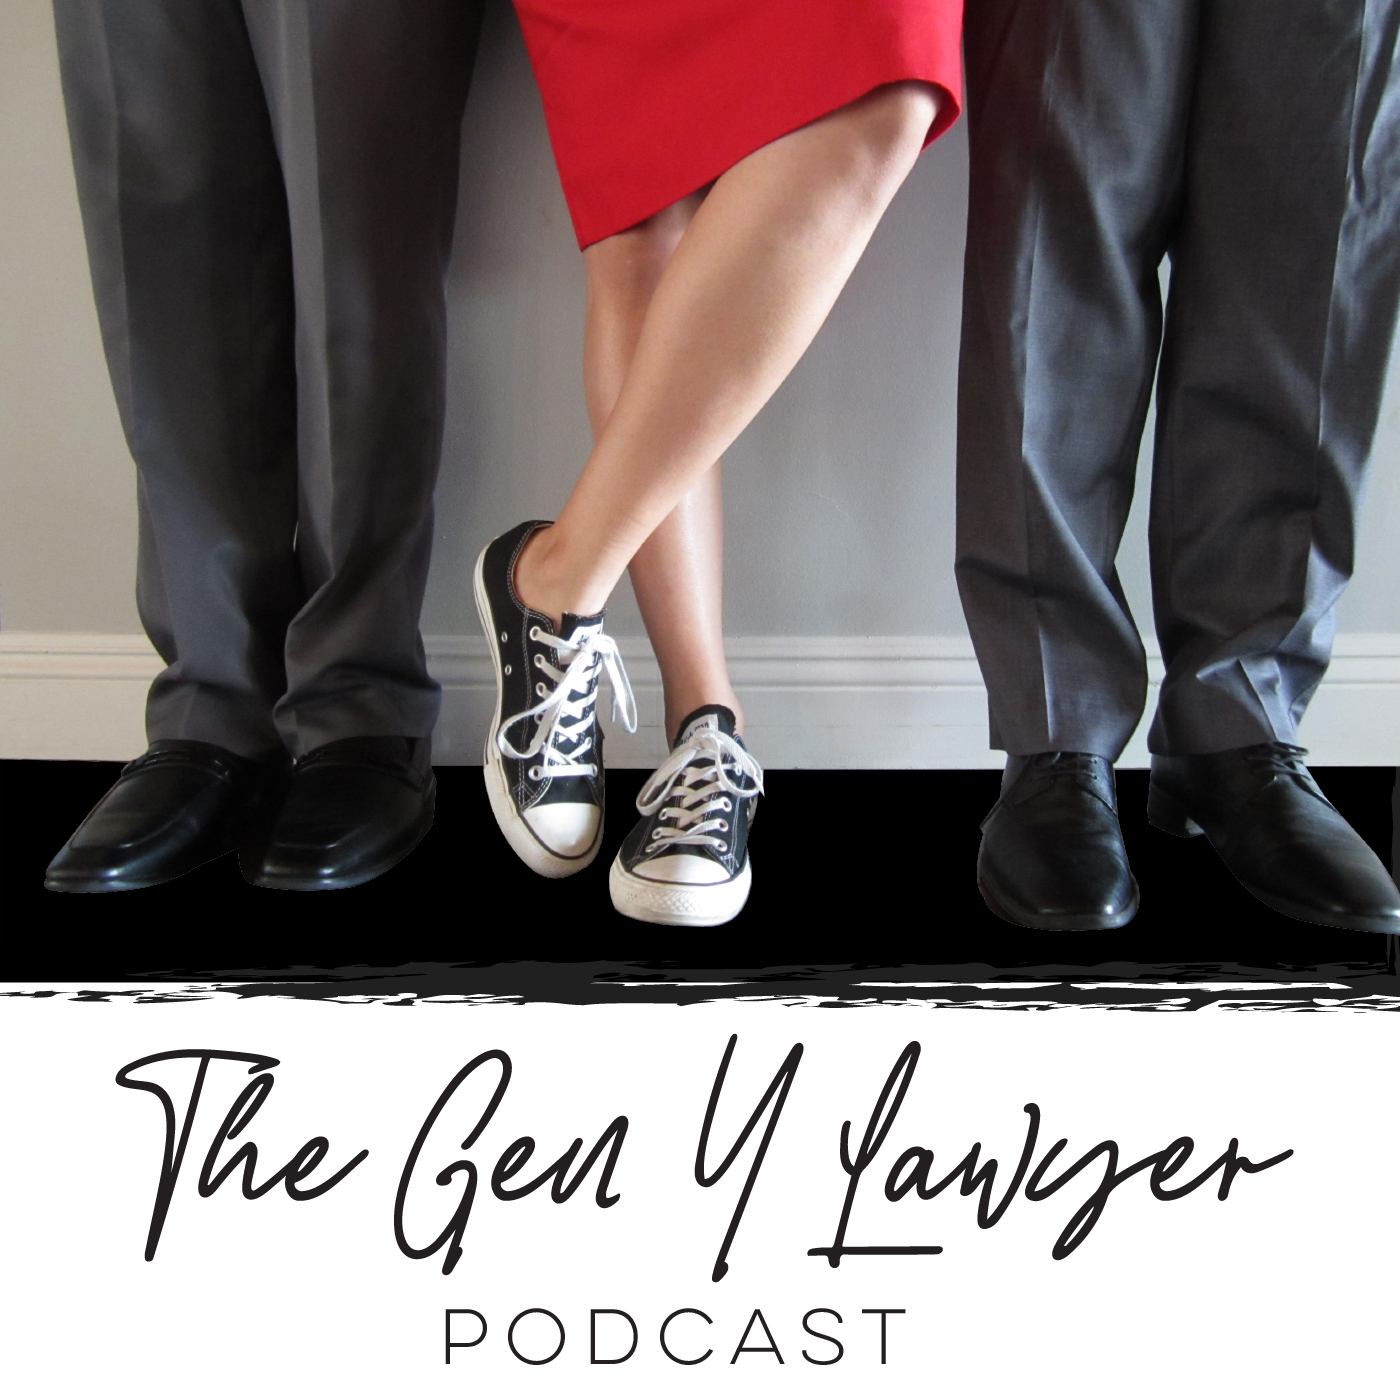 The Gen Y Lawyer Podcast